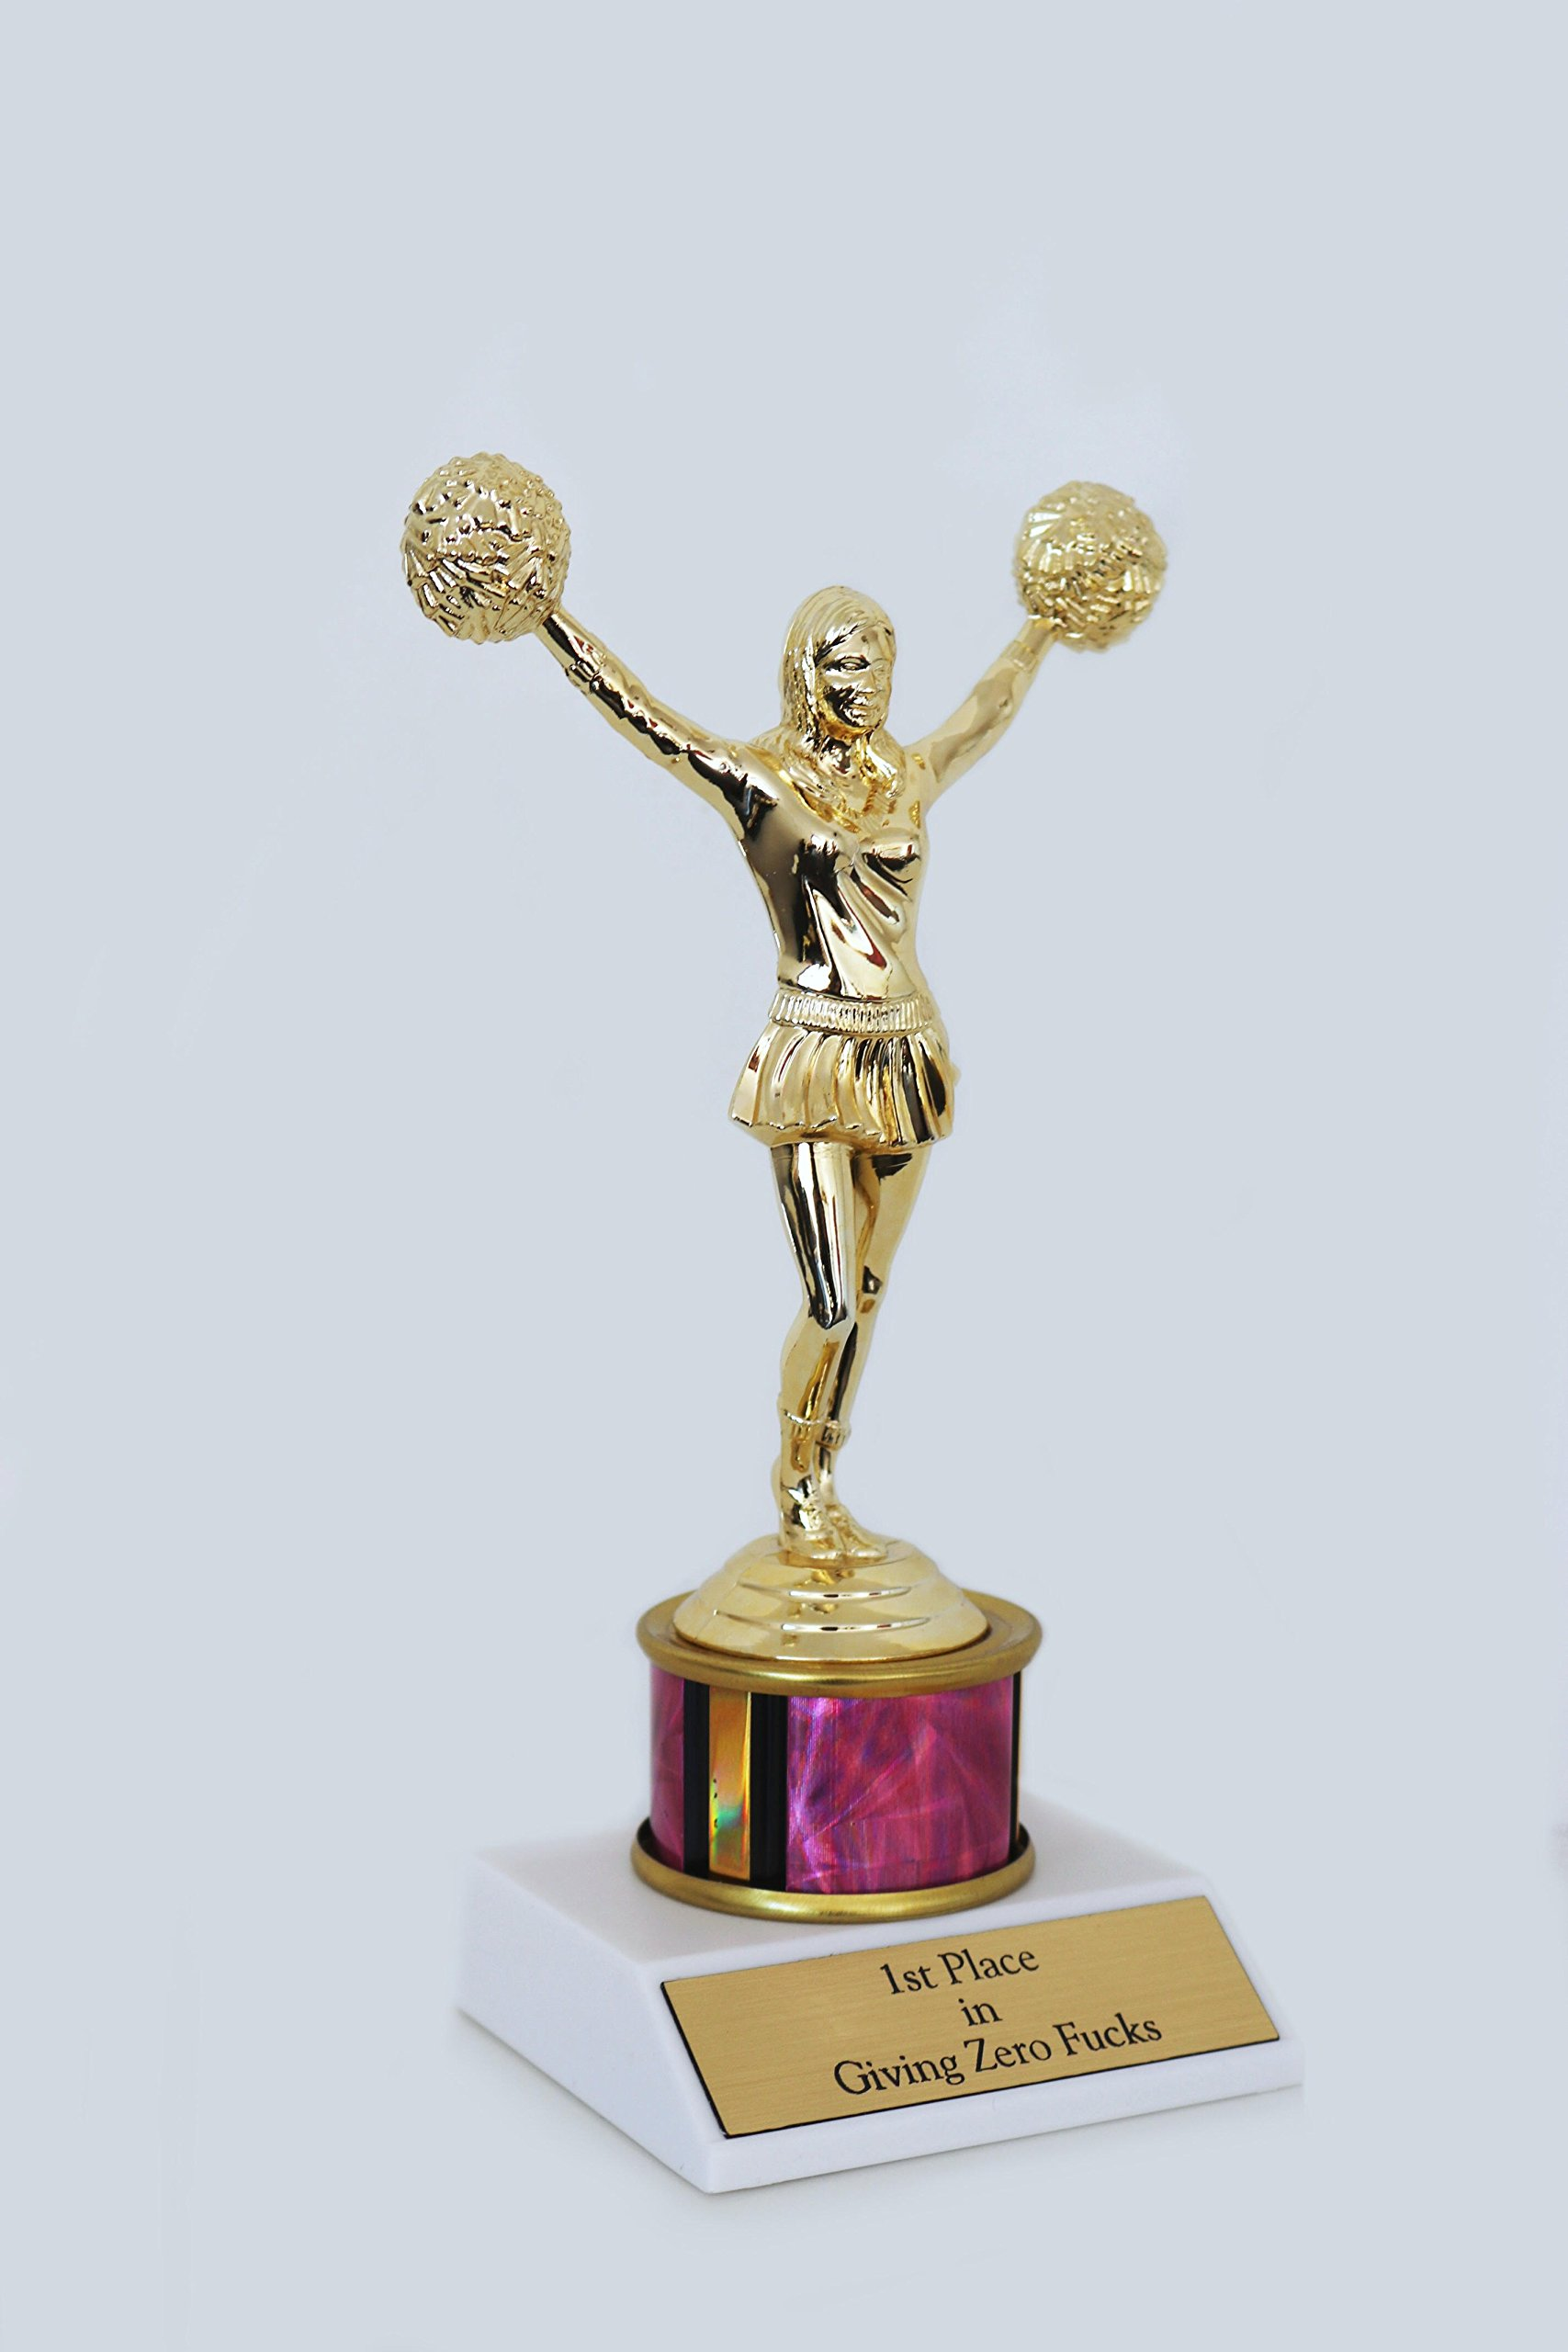 1st Place in Giving Zero Fcks Woman Trophy funny in gold and holographic pink with cheerleader cheerleading statuette by Get Bullish (Image #4)